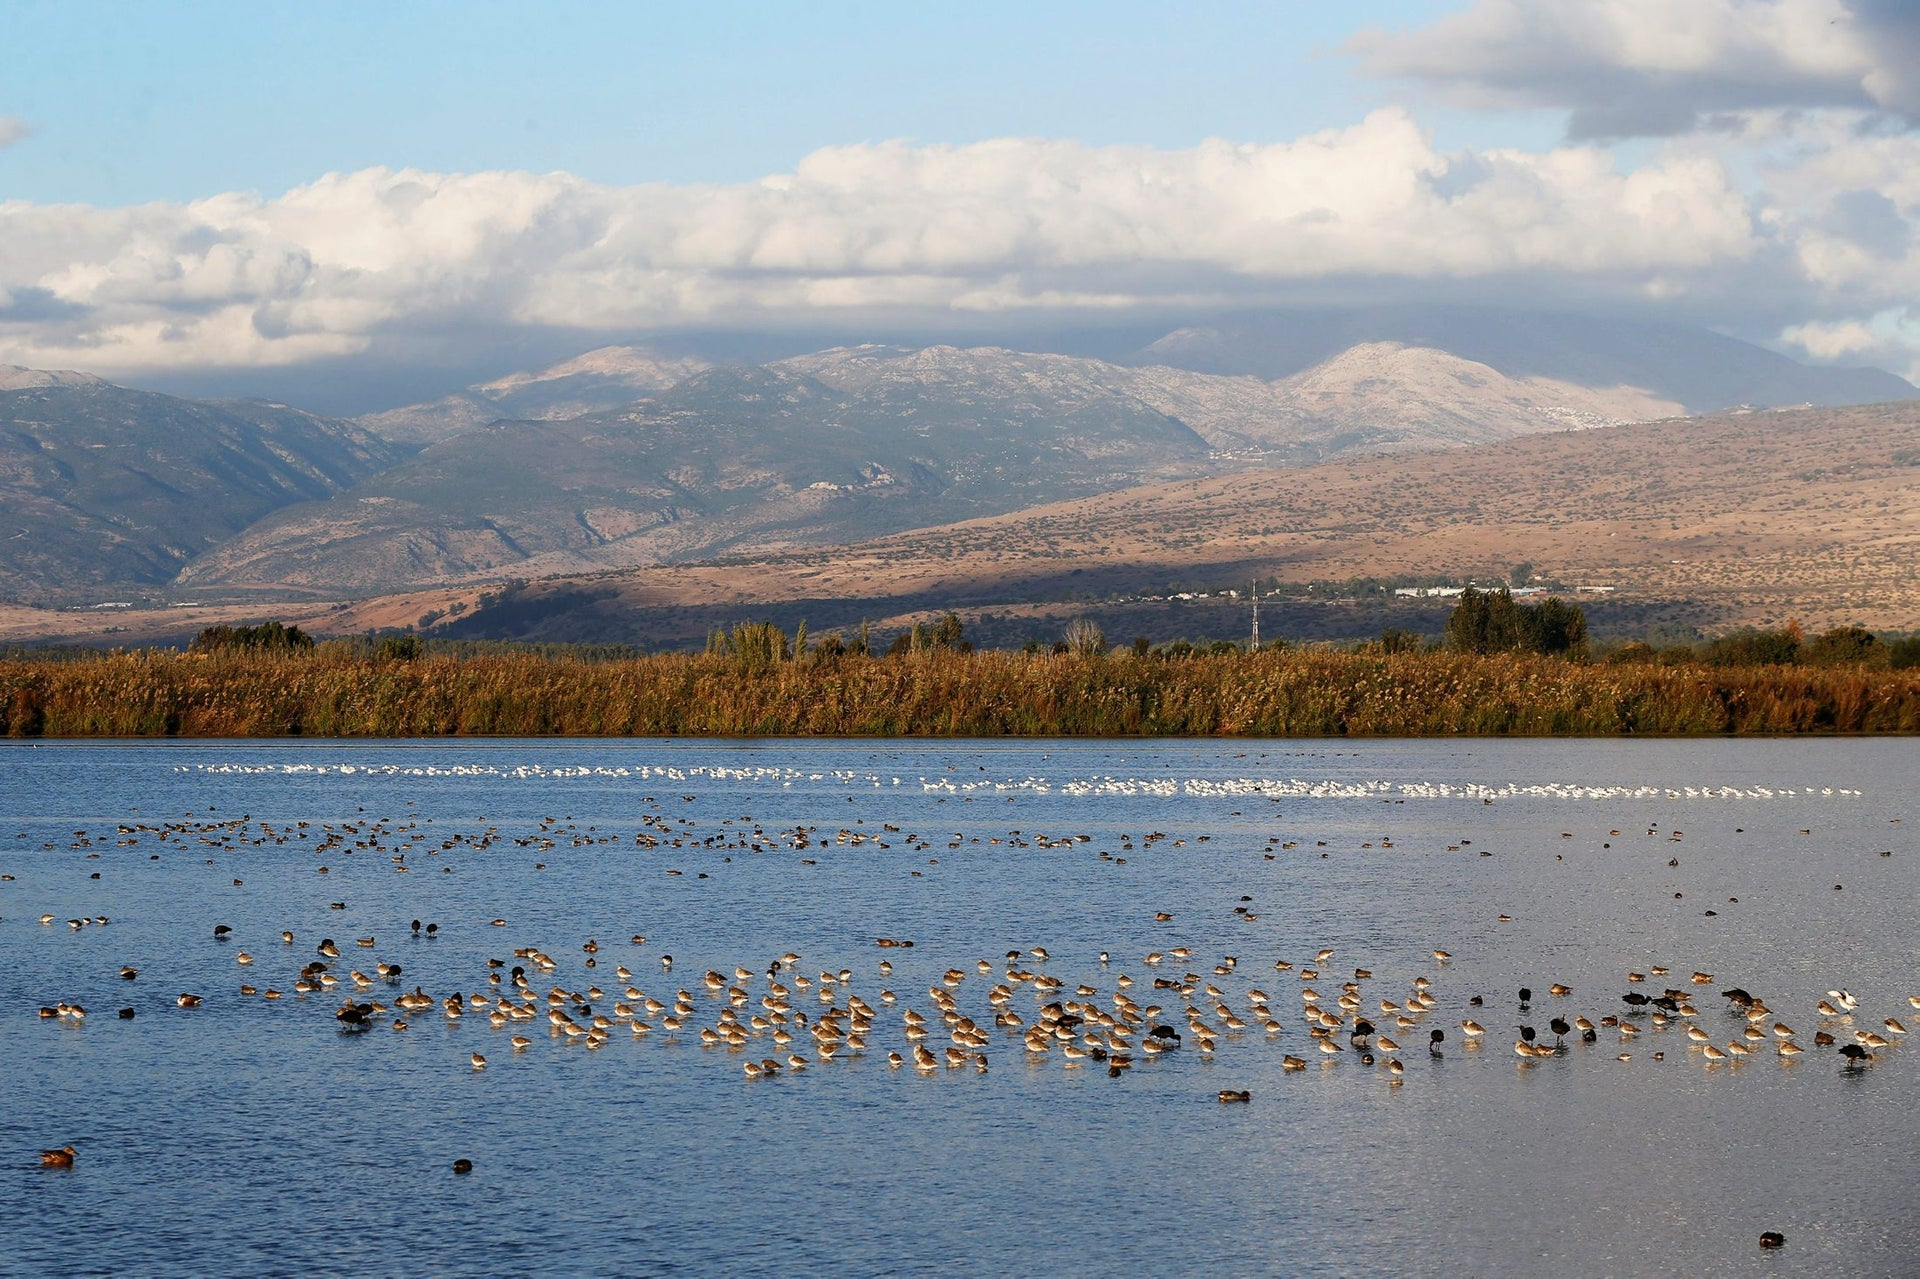 Birds rest at the Hula Nature Park in northern Israel November 22, 2017.